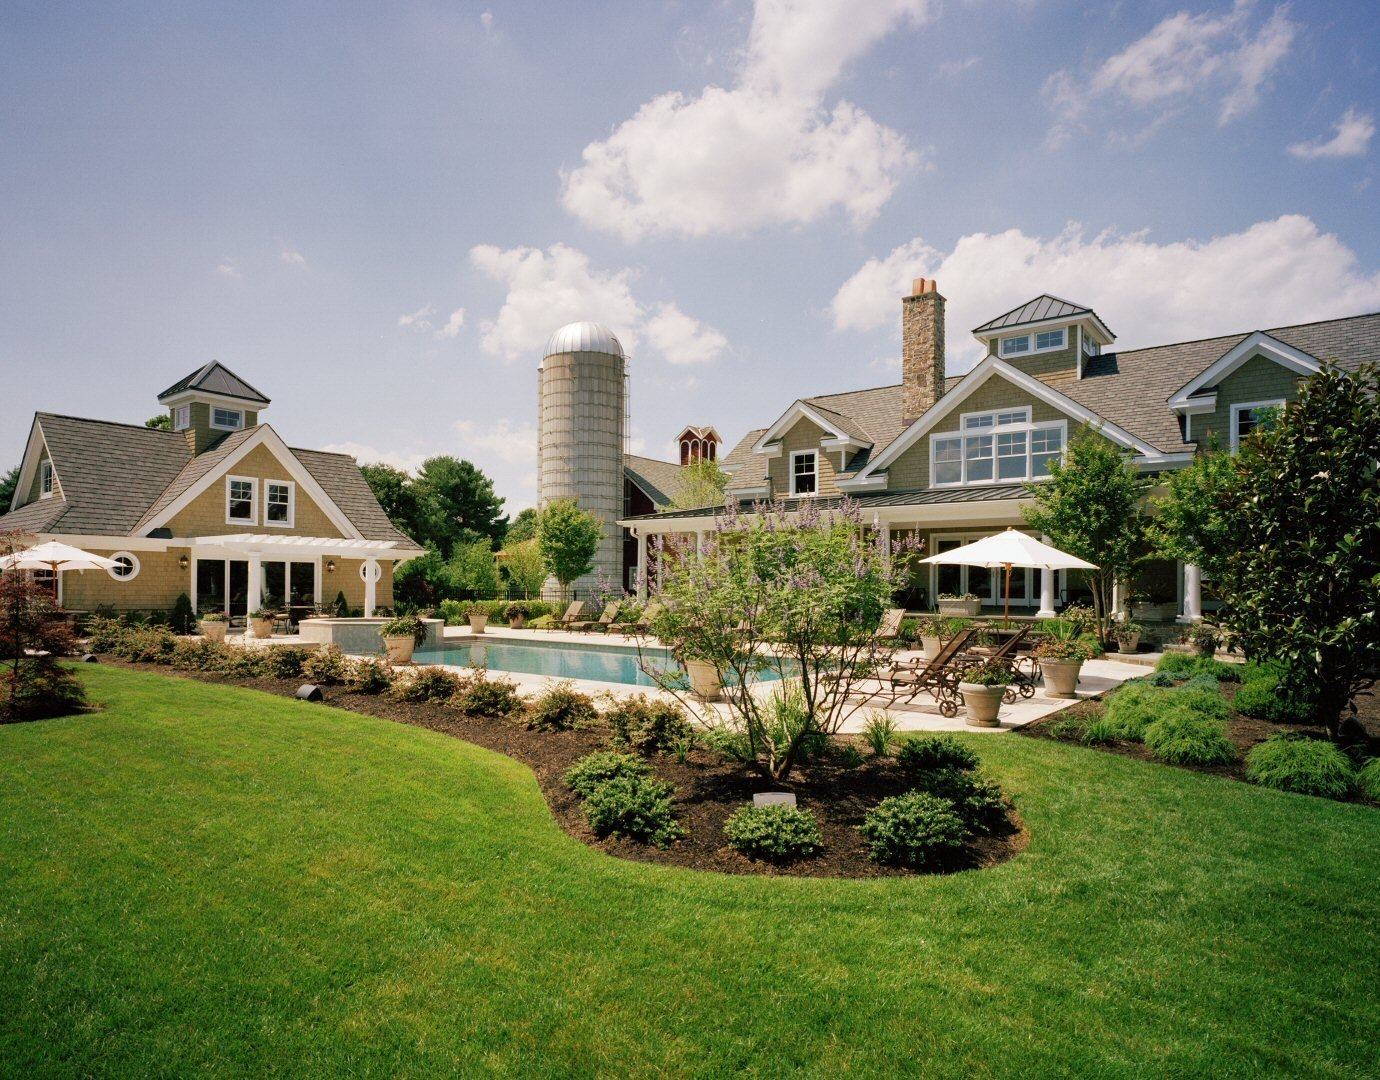 Yellow Brook Farm Poolside and Pool/Guest House  Yellow Brook Farm House by Timberpeg